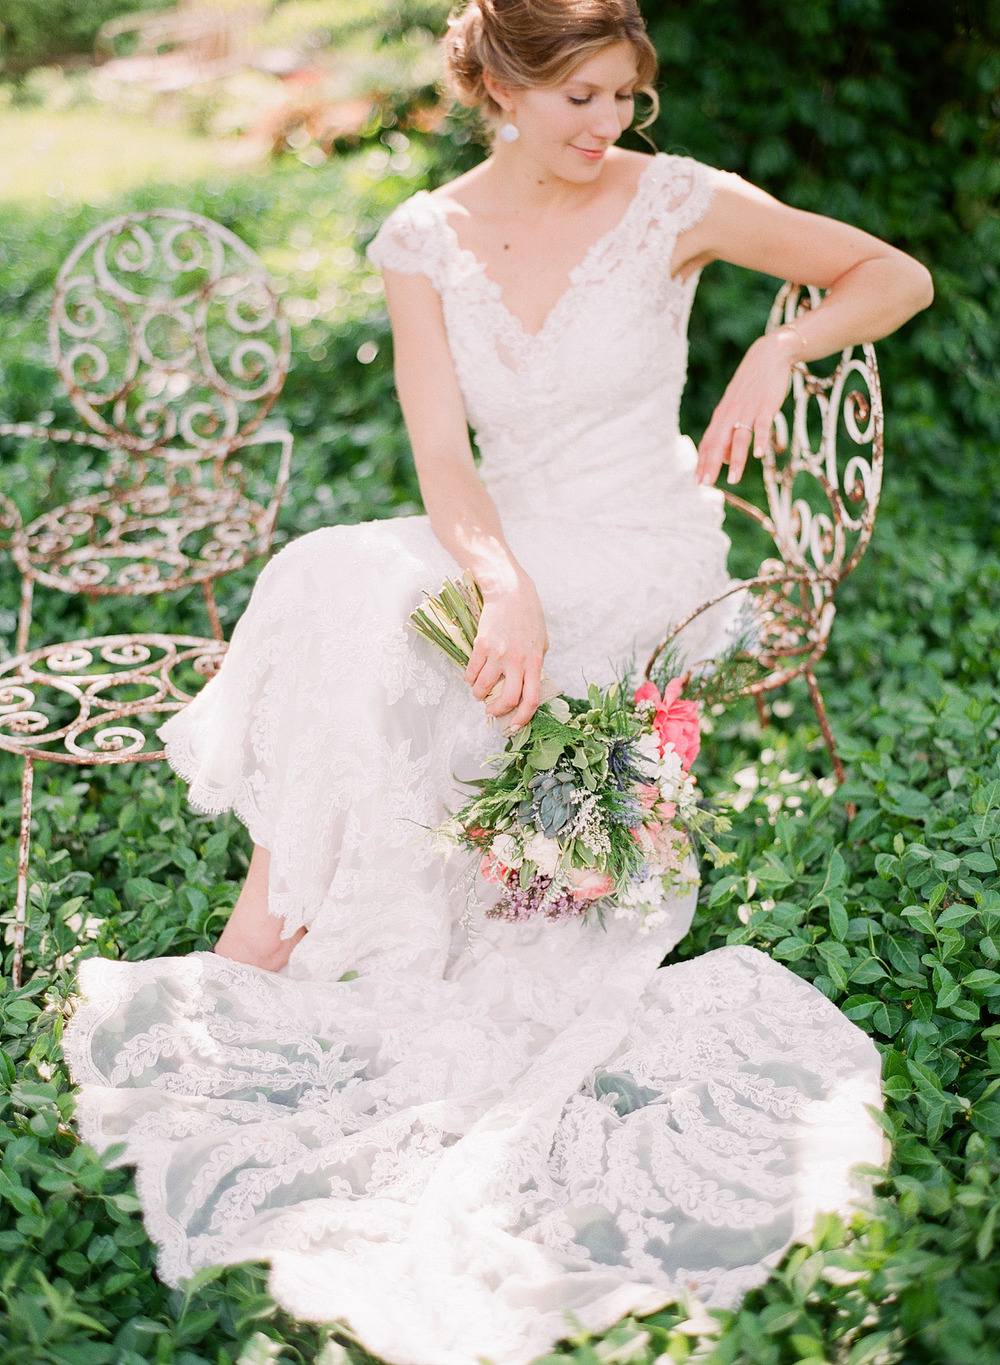 bride sits on vintage wrought iron chair in ivy in her vintage lace wedding dress with cap sleeves holding her asymmetrical spring wedding bouquet at this  springtime wedding at Northwind Perennial Garden - a beautiful wisconsin wedding venue - while Destination wedding photographer Lexia Frank Photographs this wedding on film